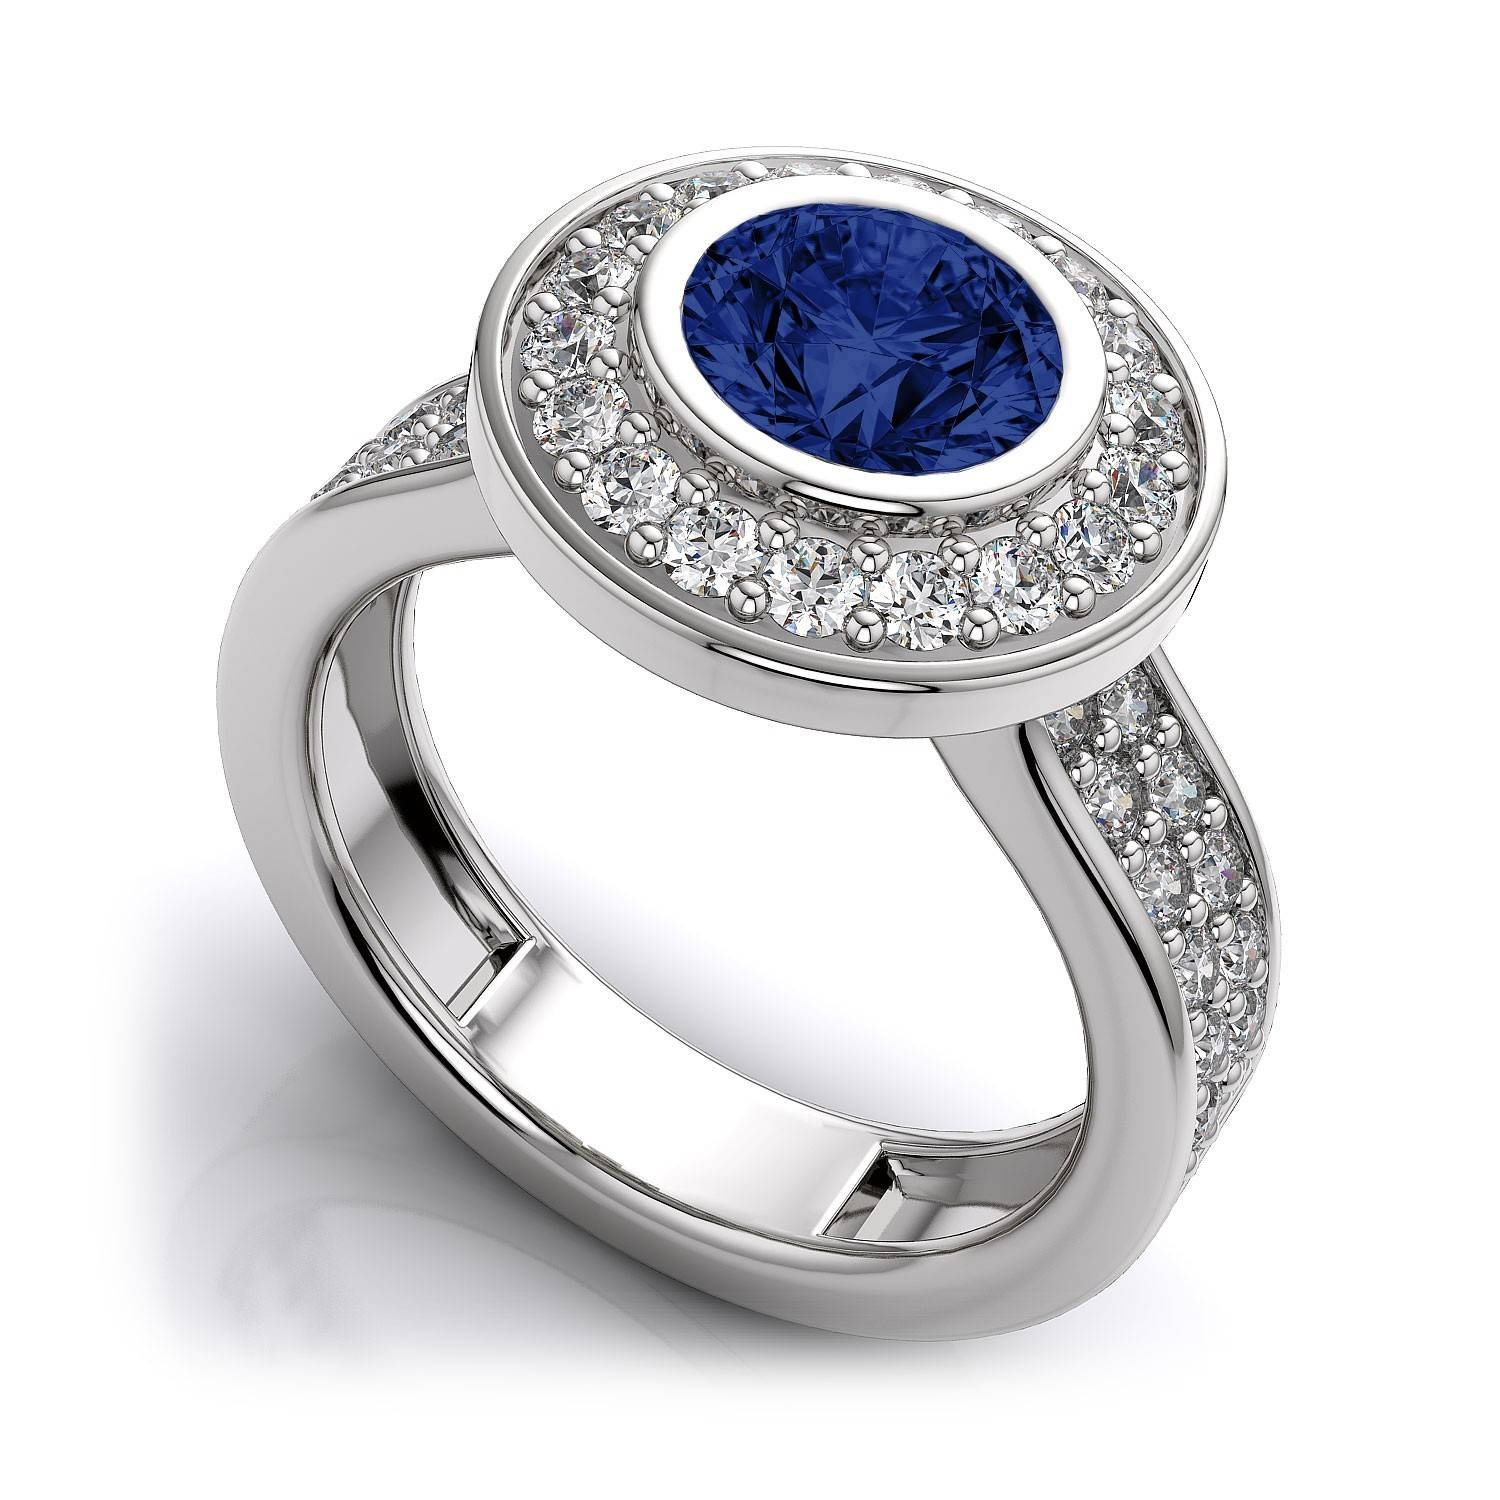 Ring Lab Created Diamond Wedding Ring Blue Sapphire Wedding Ring Regarding Special Design Wedding Rings (View 6 of 15)